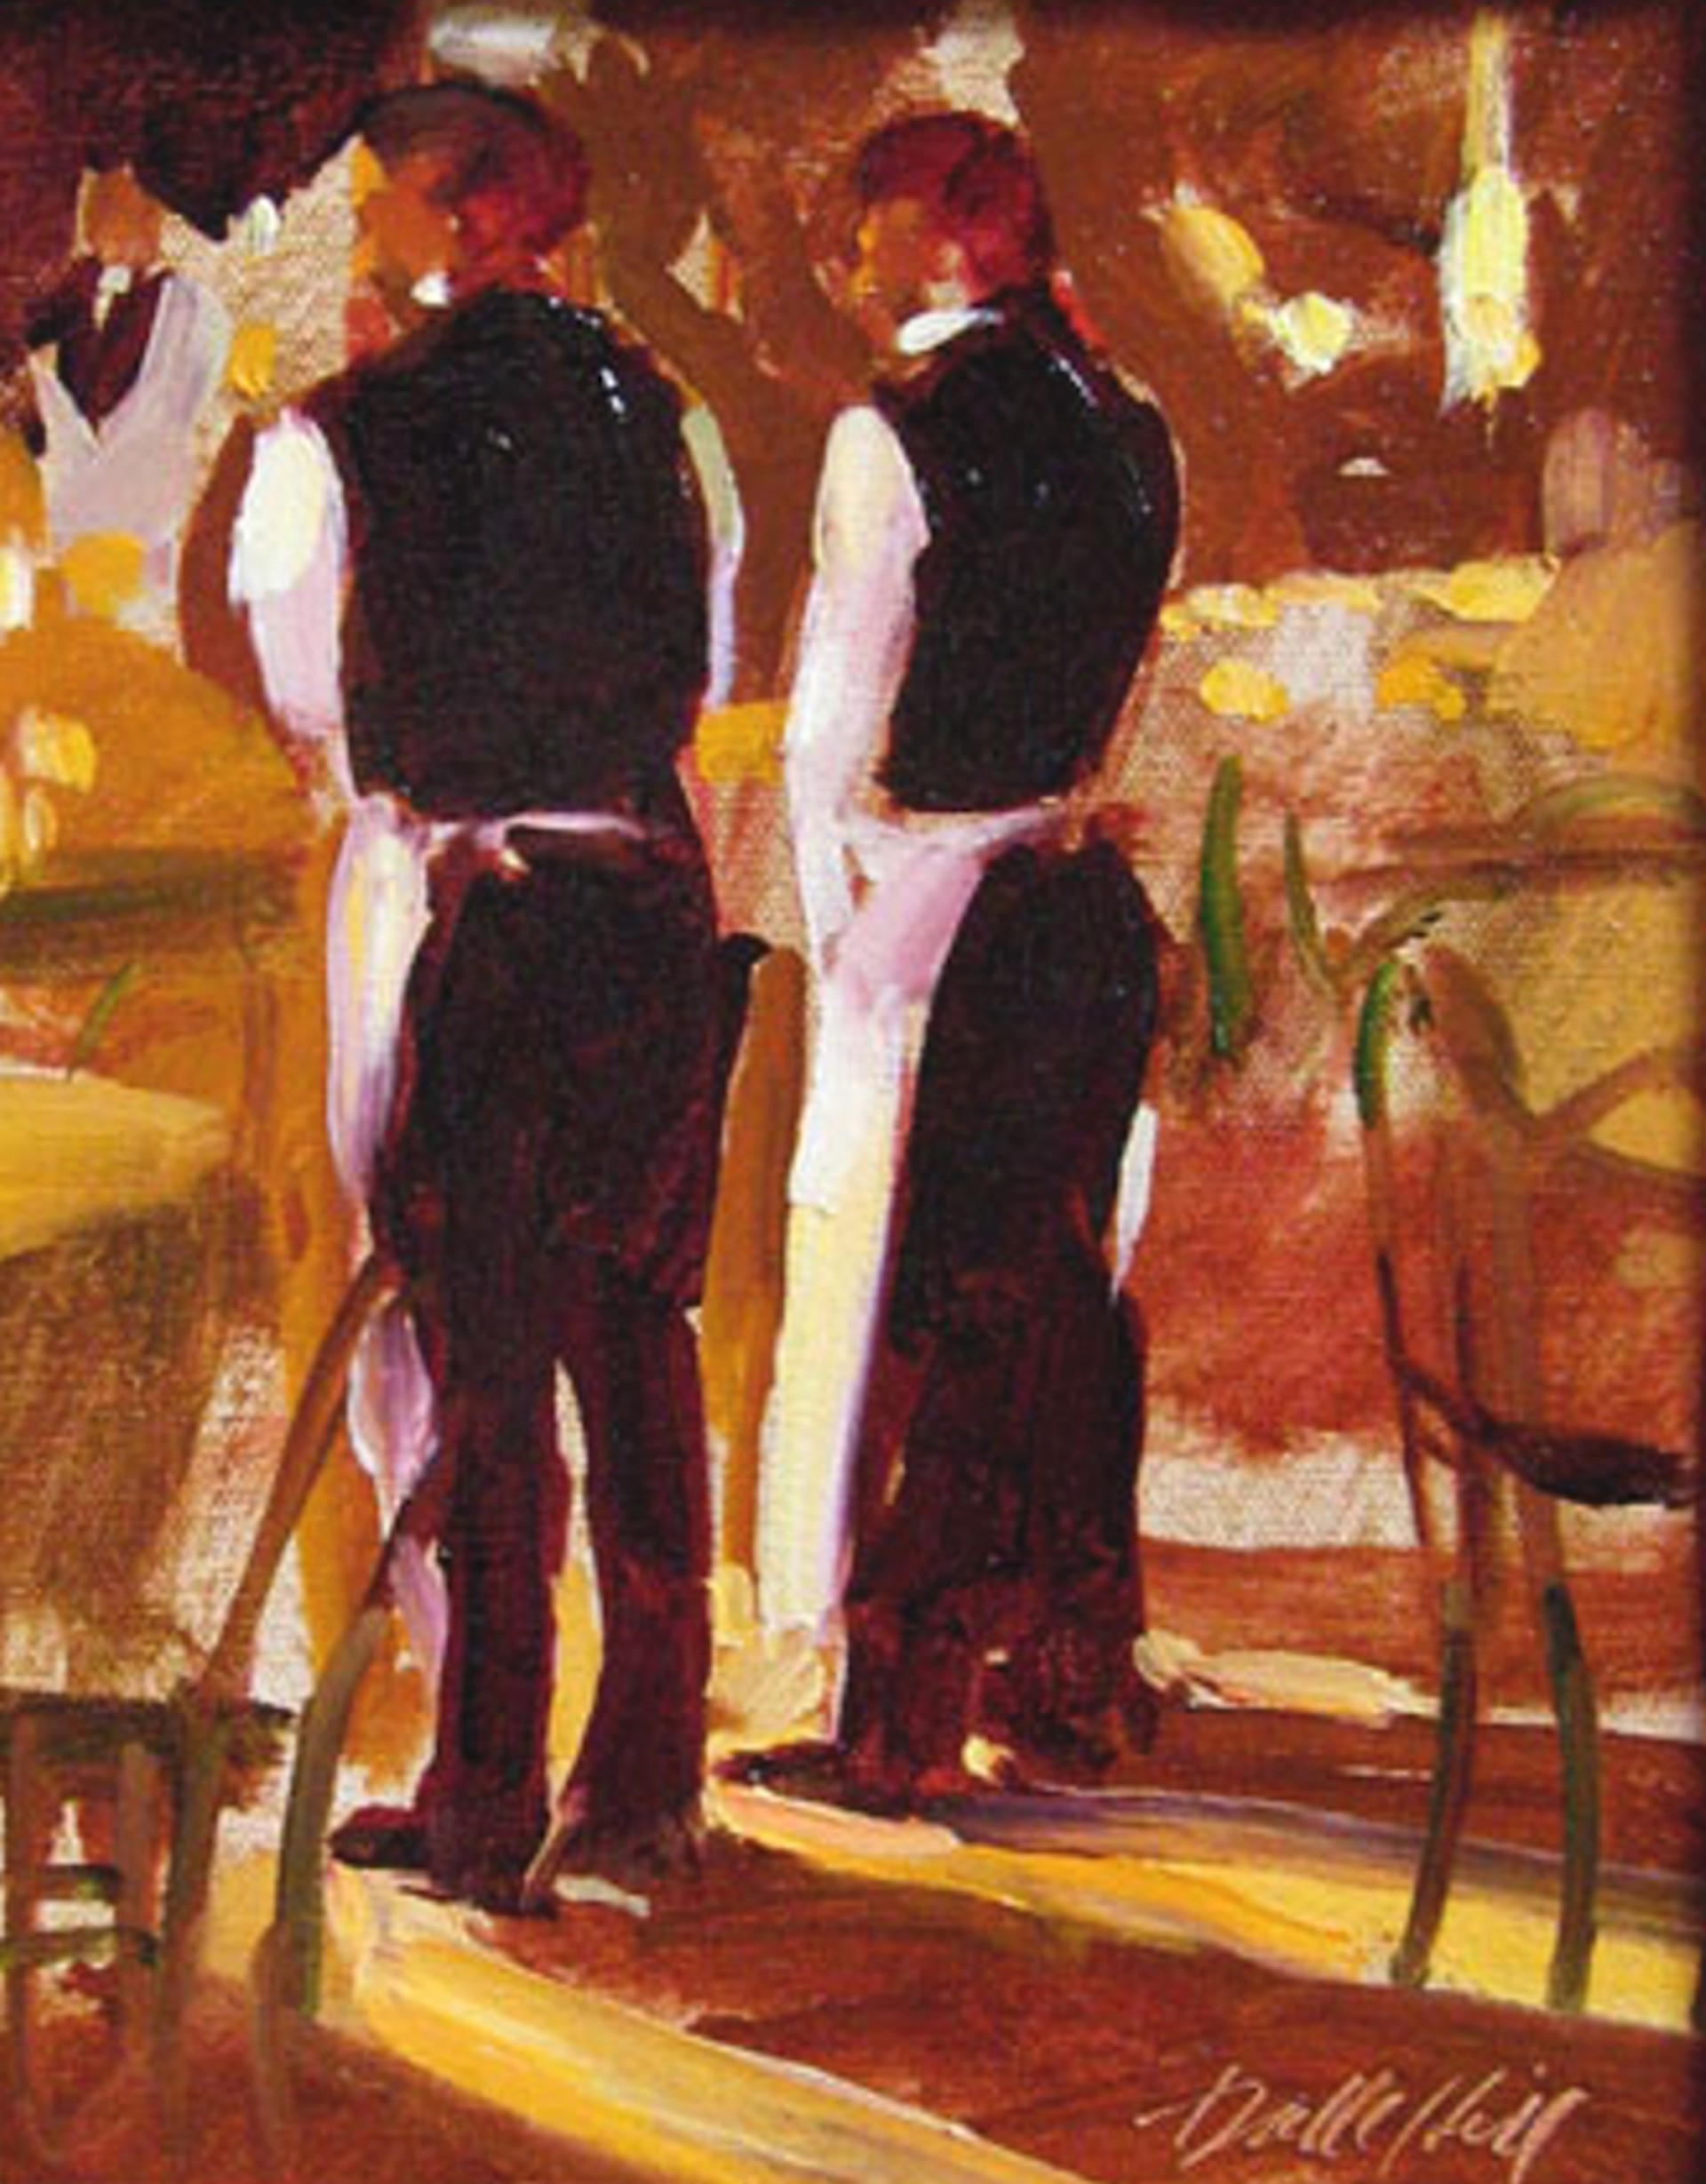 The Waiters by Darrell Hill